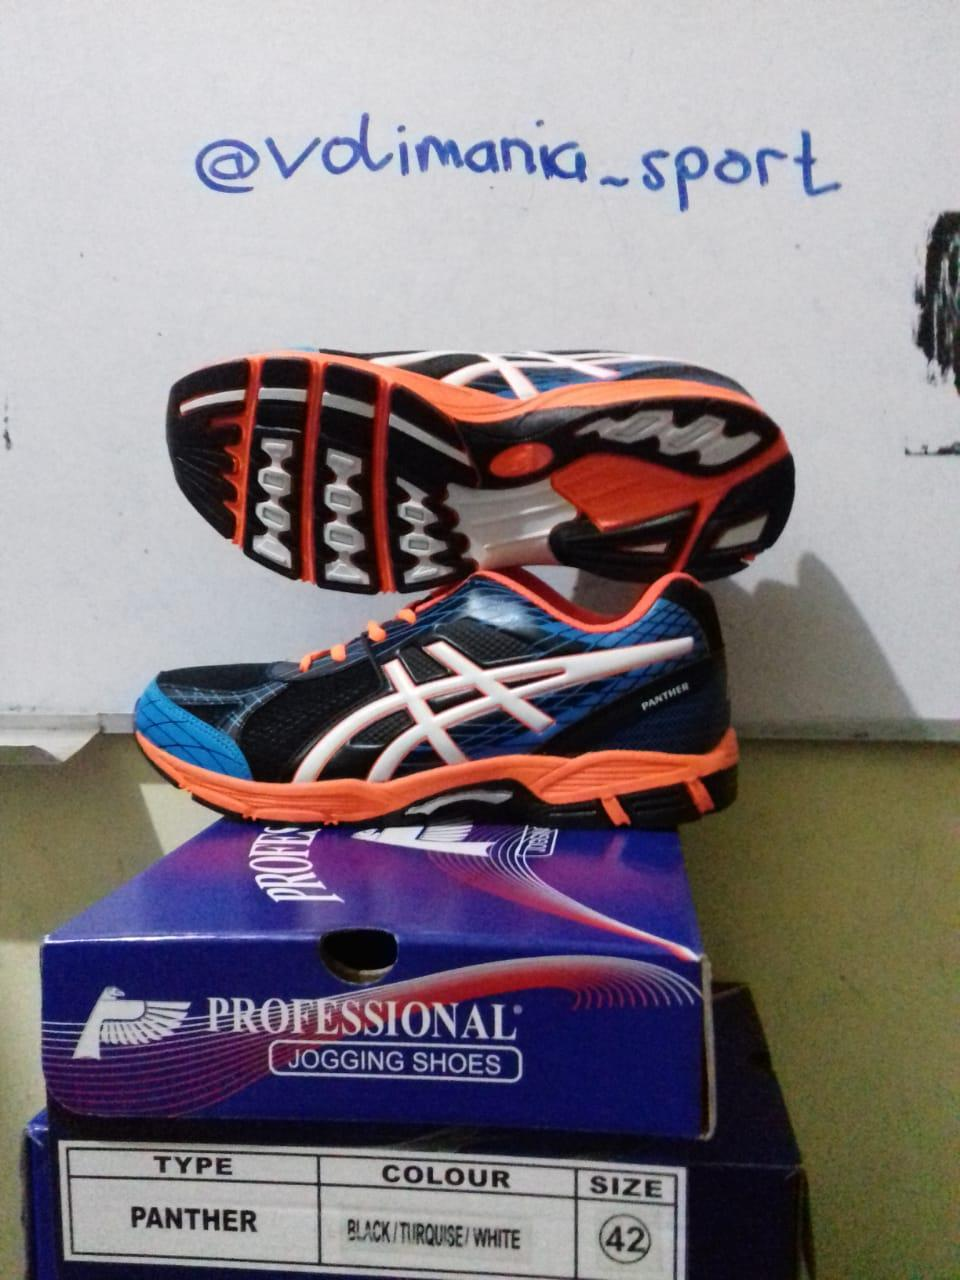 Sepatu Running Professional Panther By Volimania-Sport.